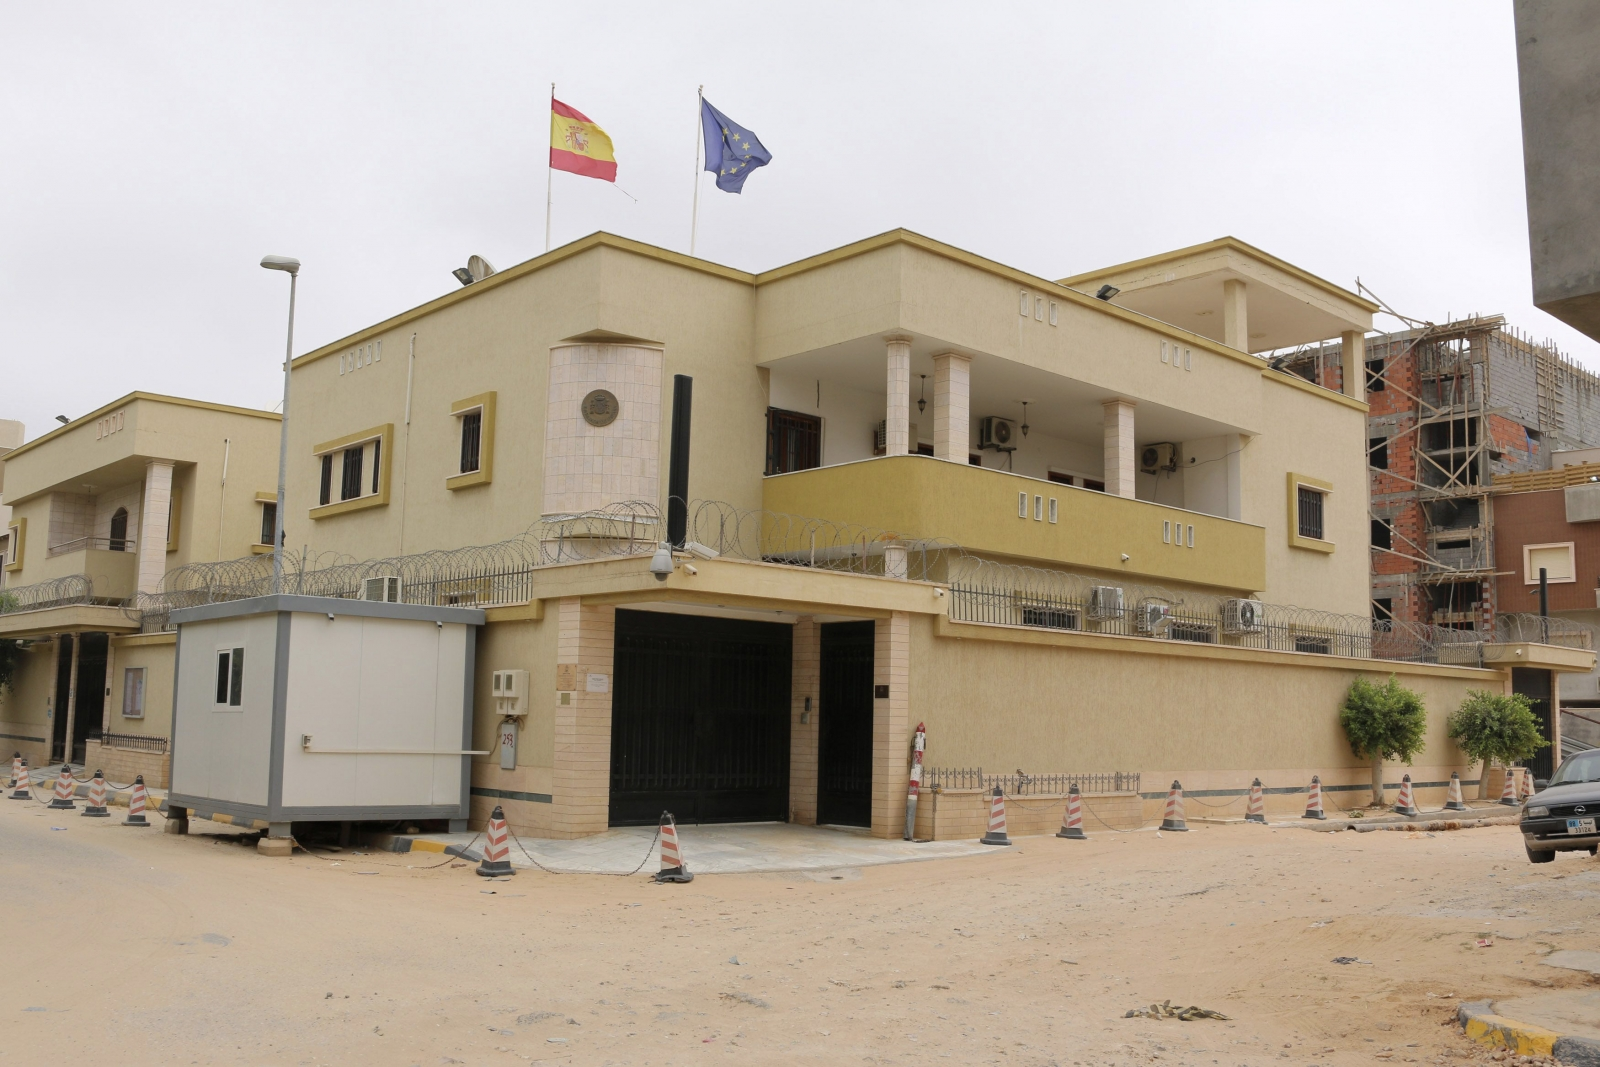 ISIS bombs Spain's Embassy Libya